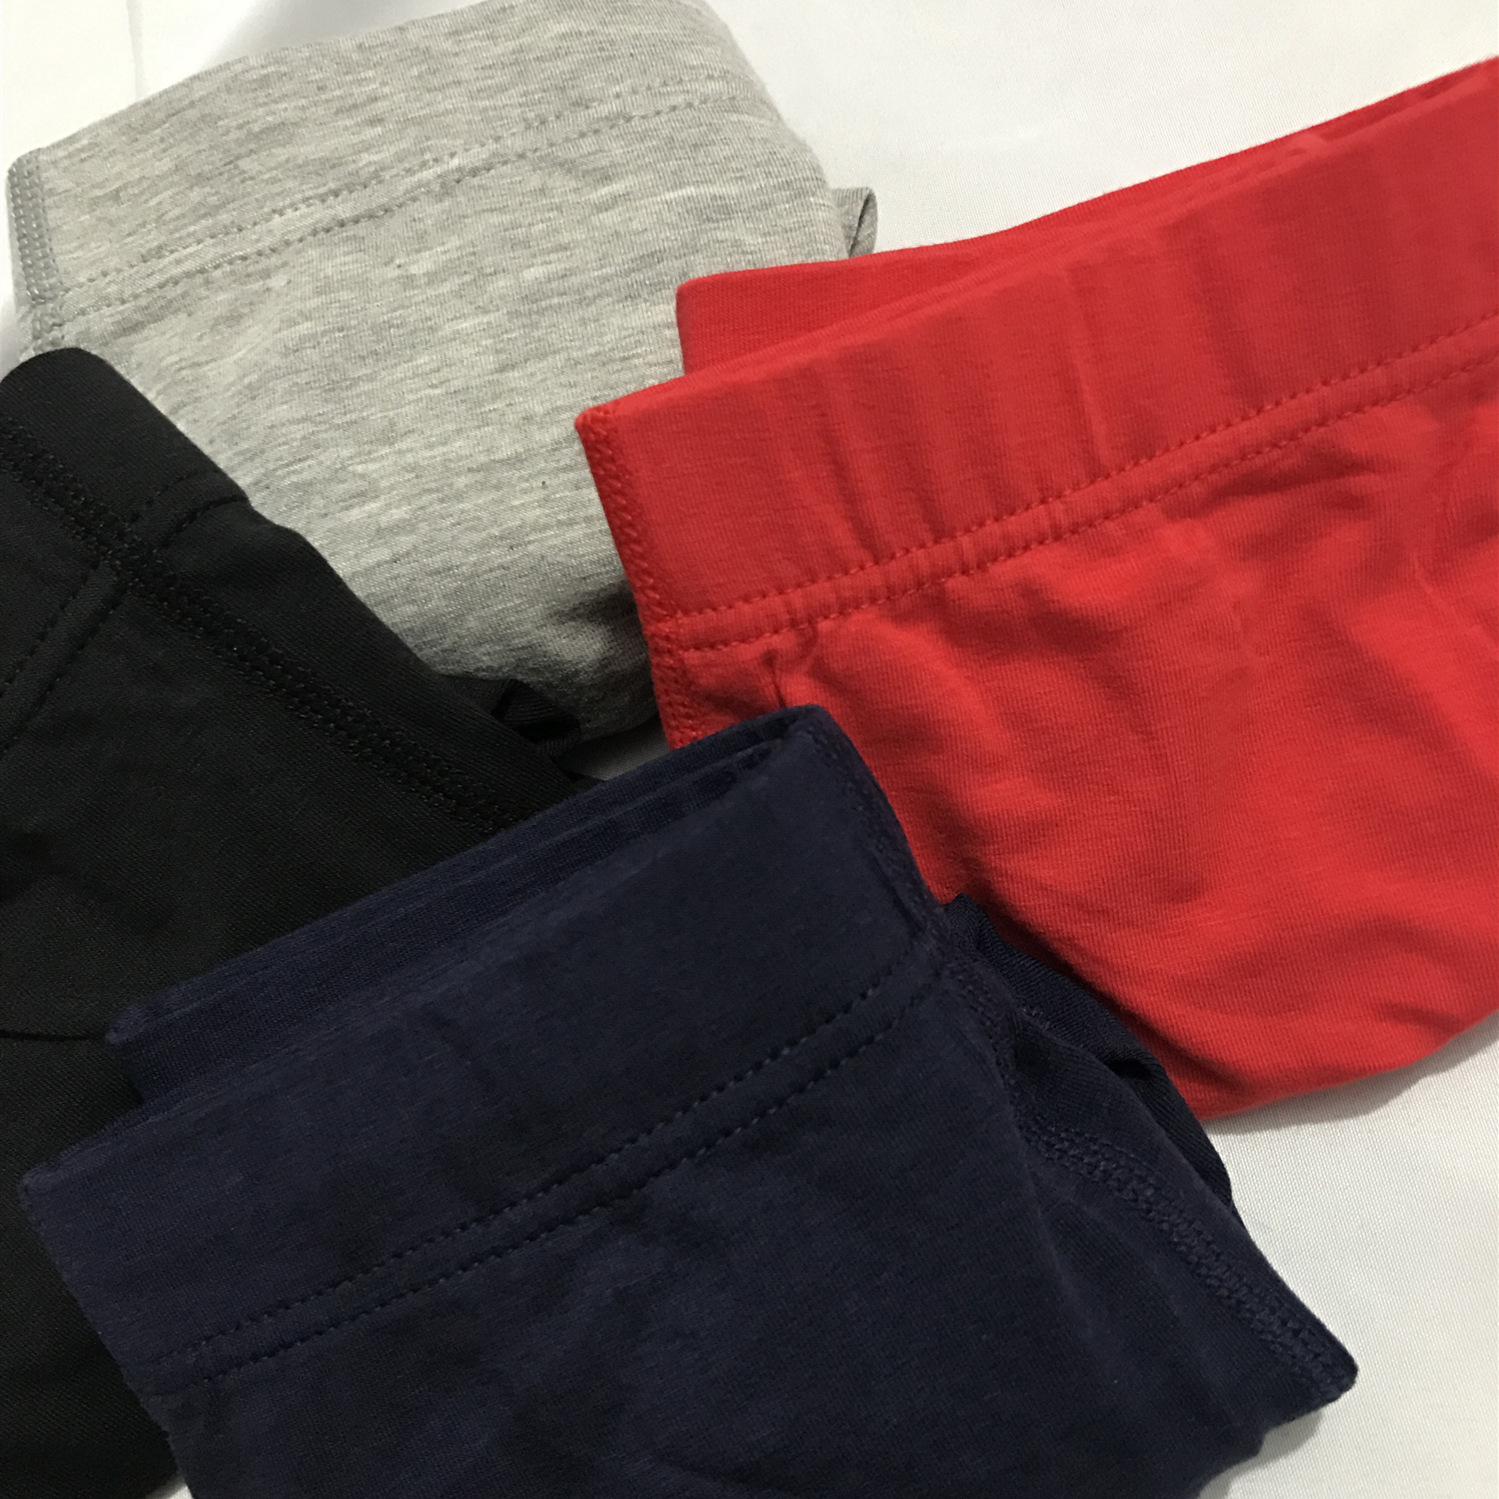 Men's Underwear Cotton High-End Mid-Waist Solid Color Comfortable Breathable Boxer Men's U Convex Design Solid Color Underwear